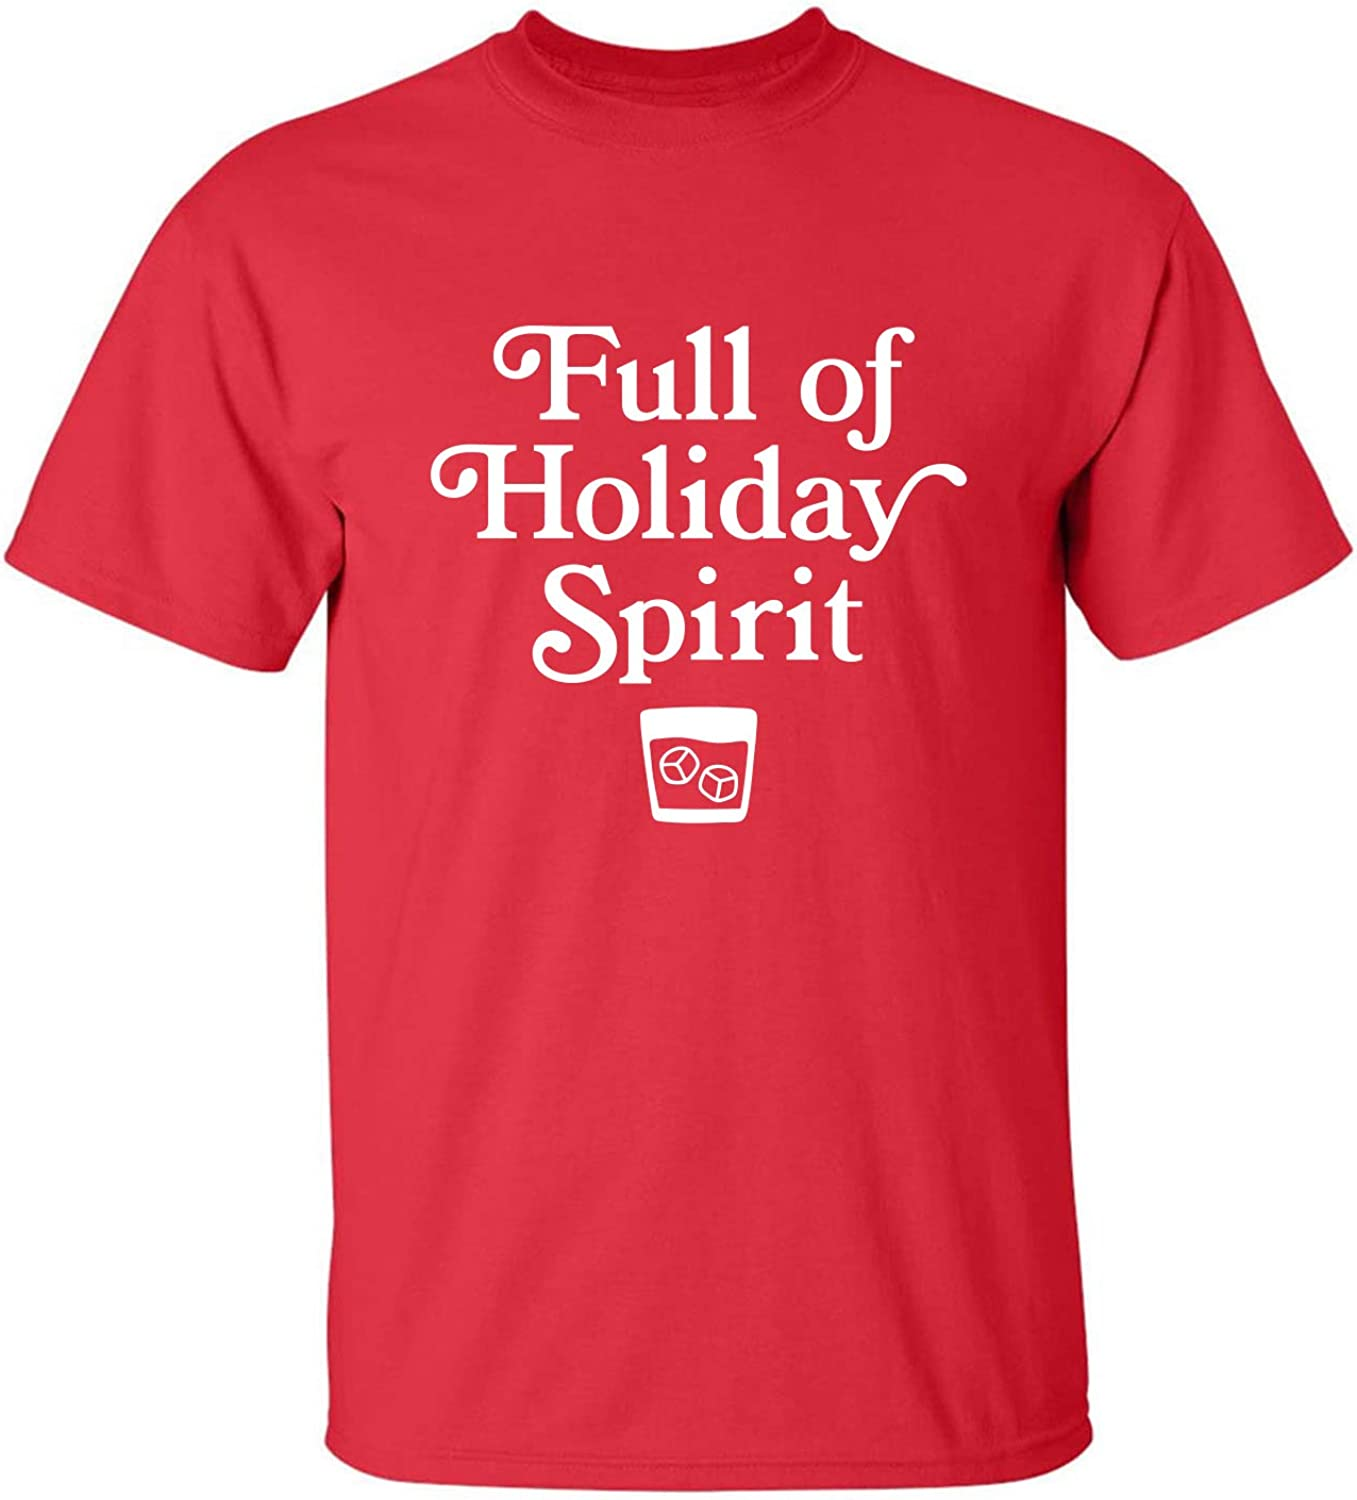 Full of Holiday Spirit Adult T-Shirt in Red - XXX-Large